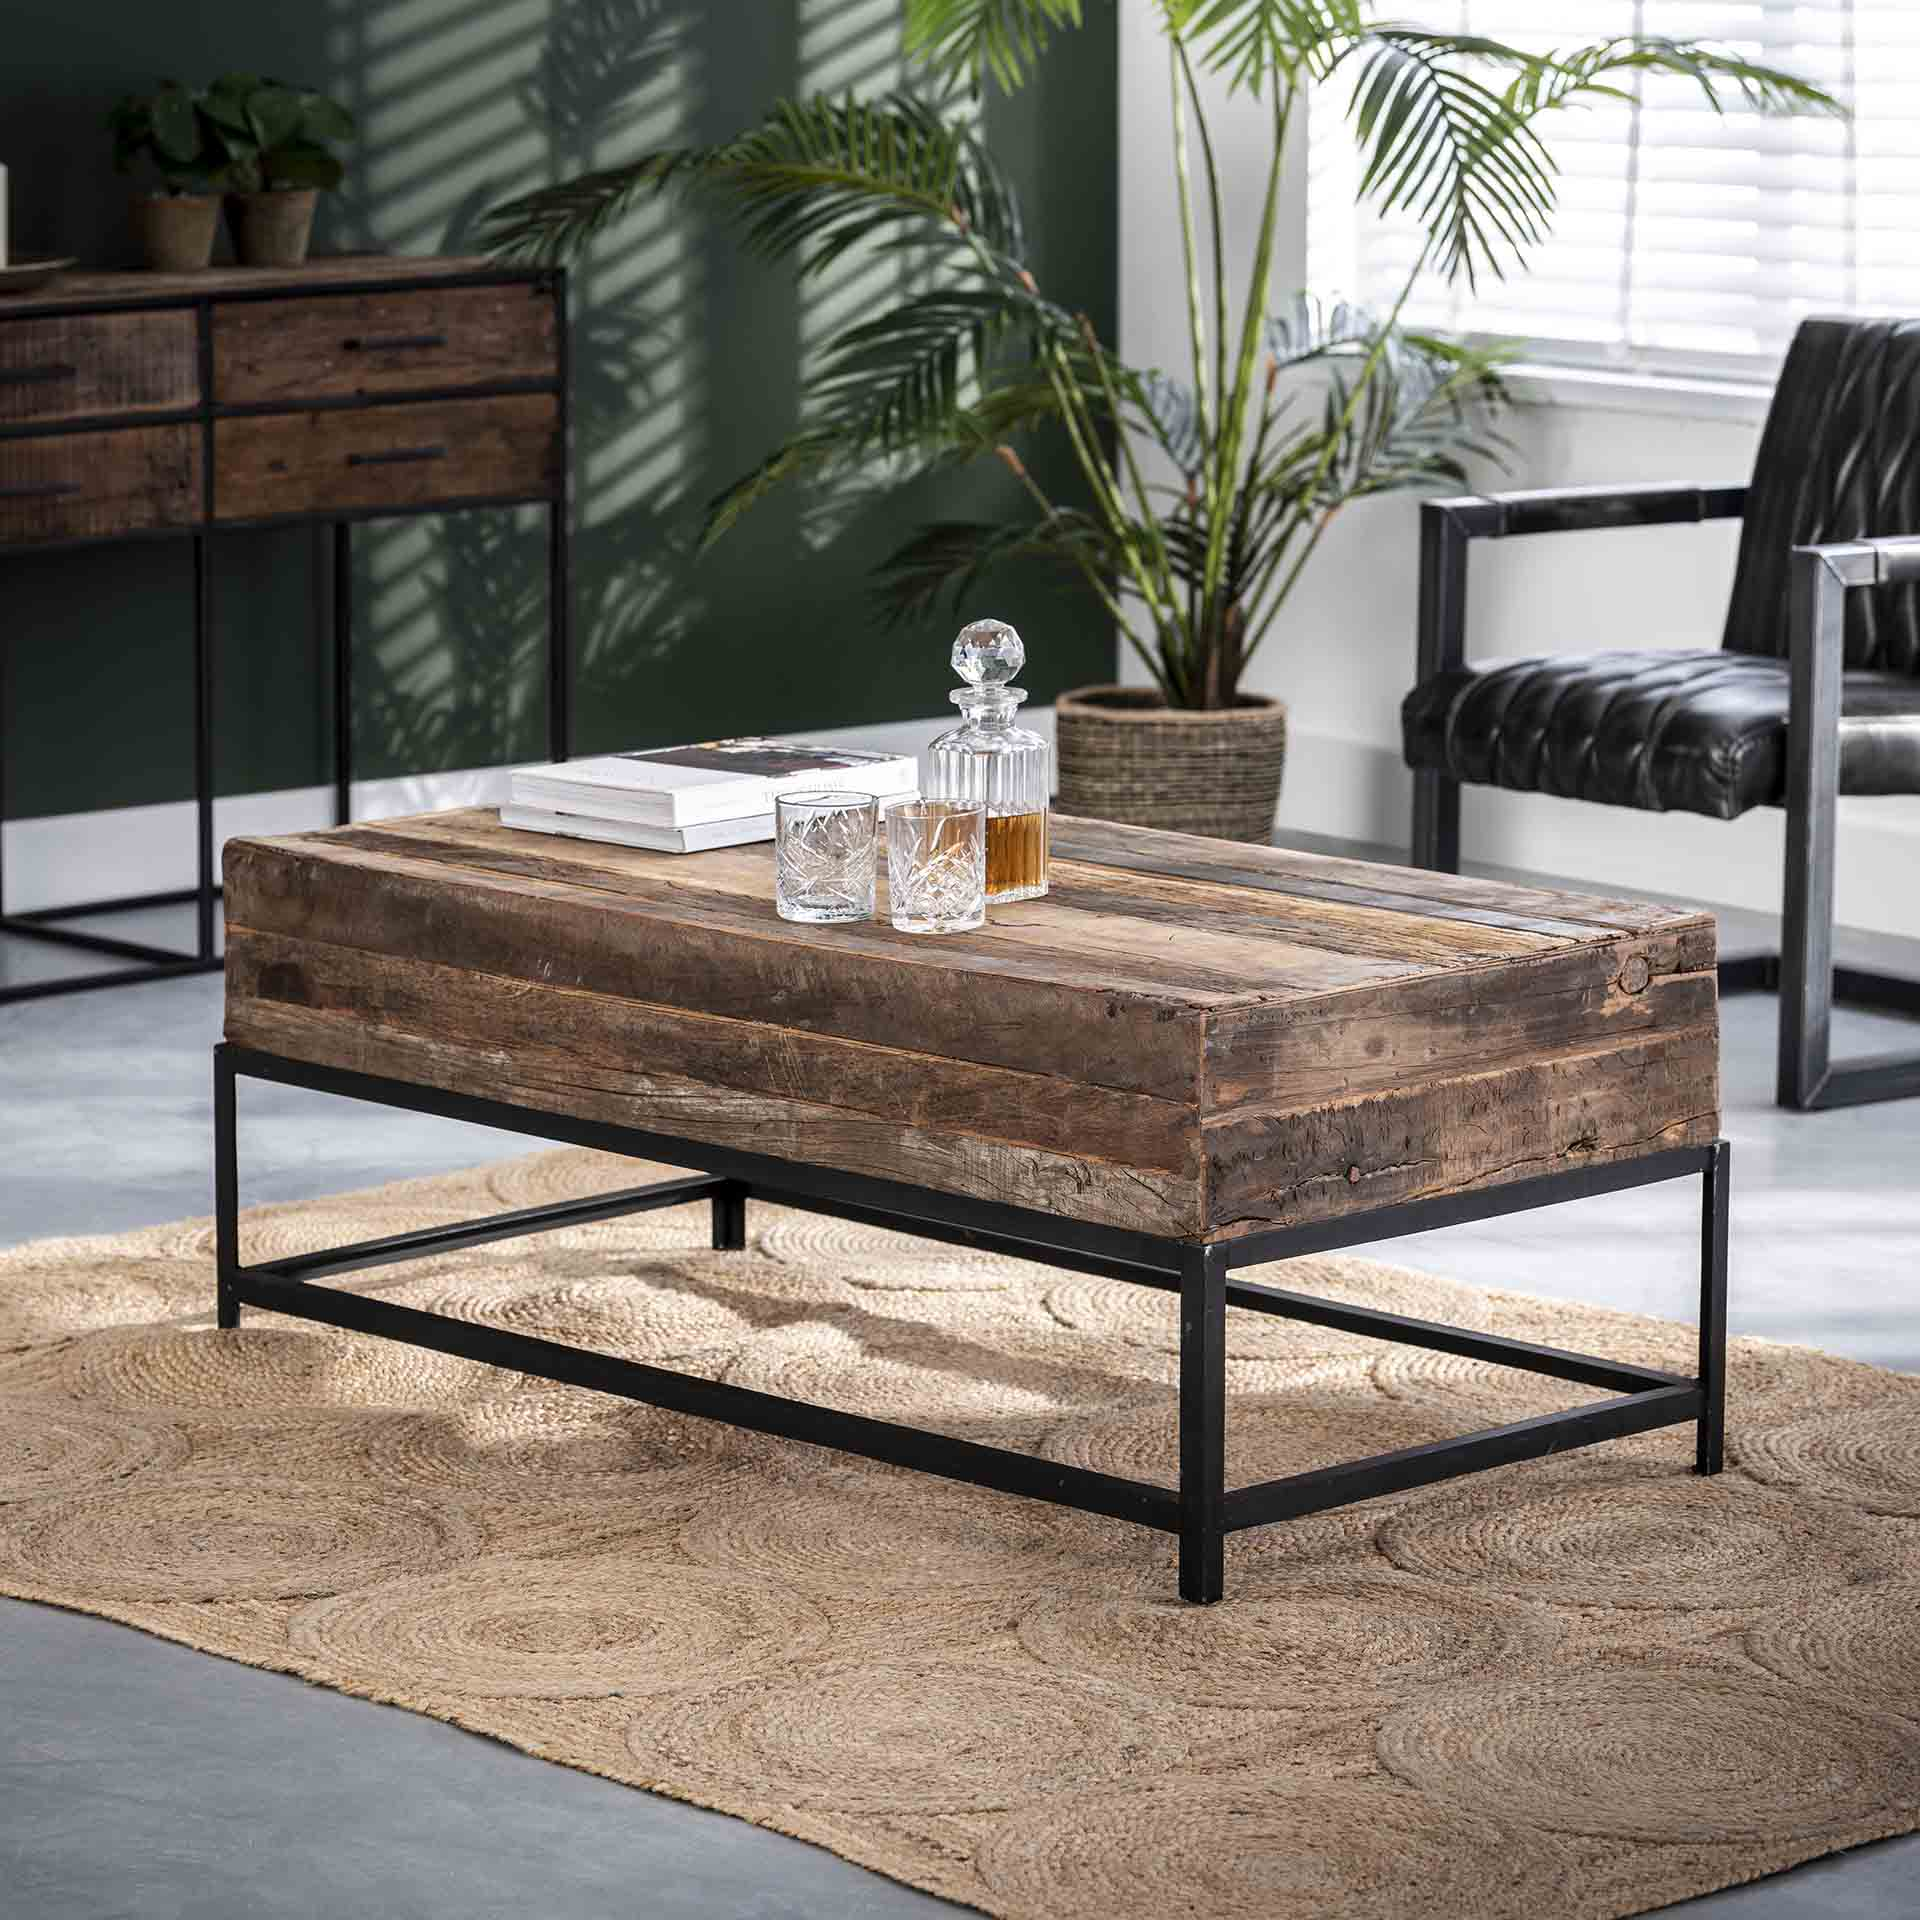 Couchtisch - Lounge - aus recyceltem Holz